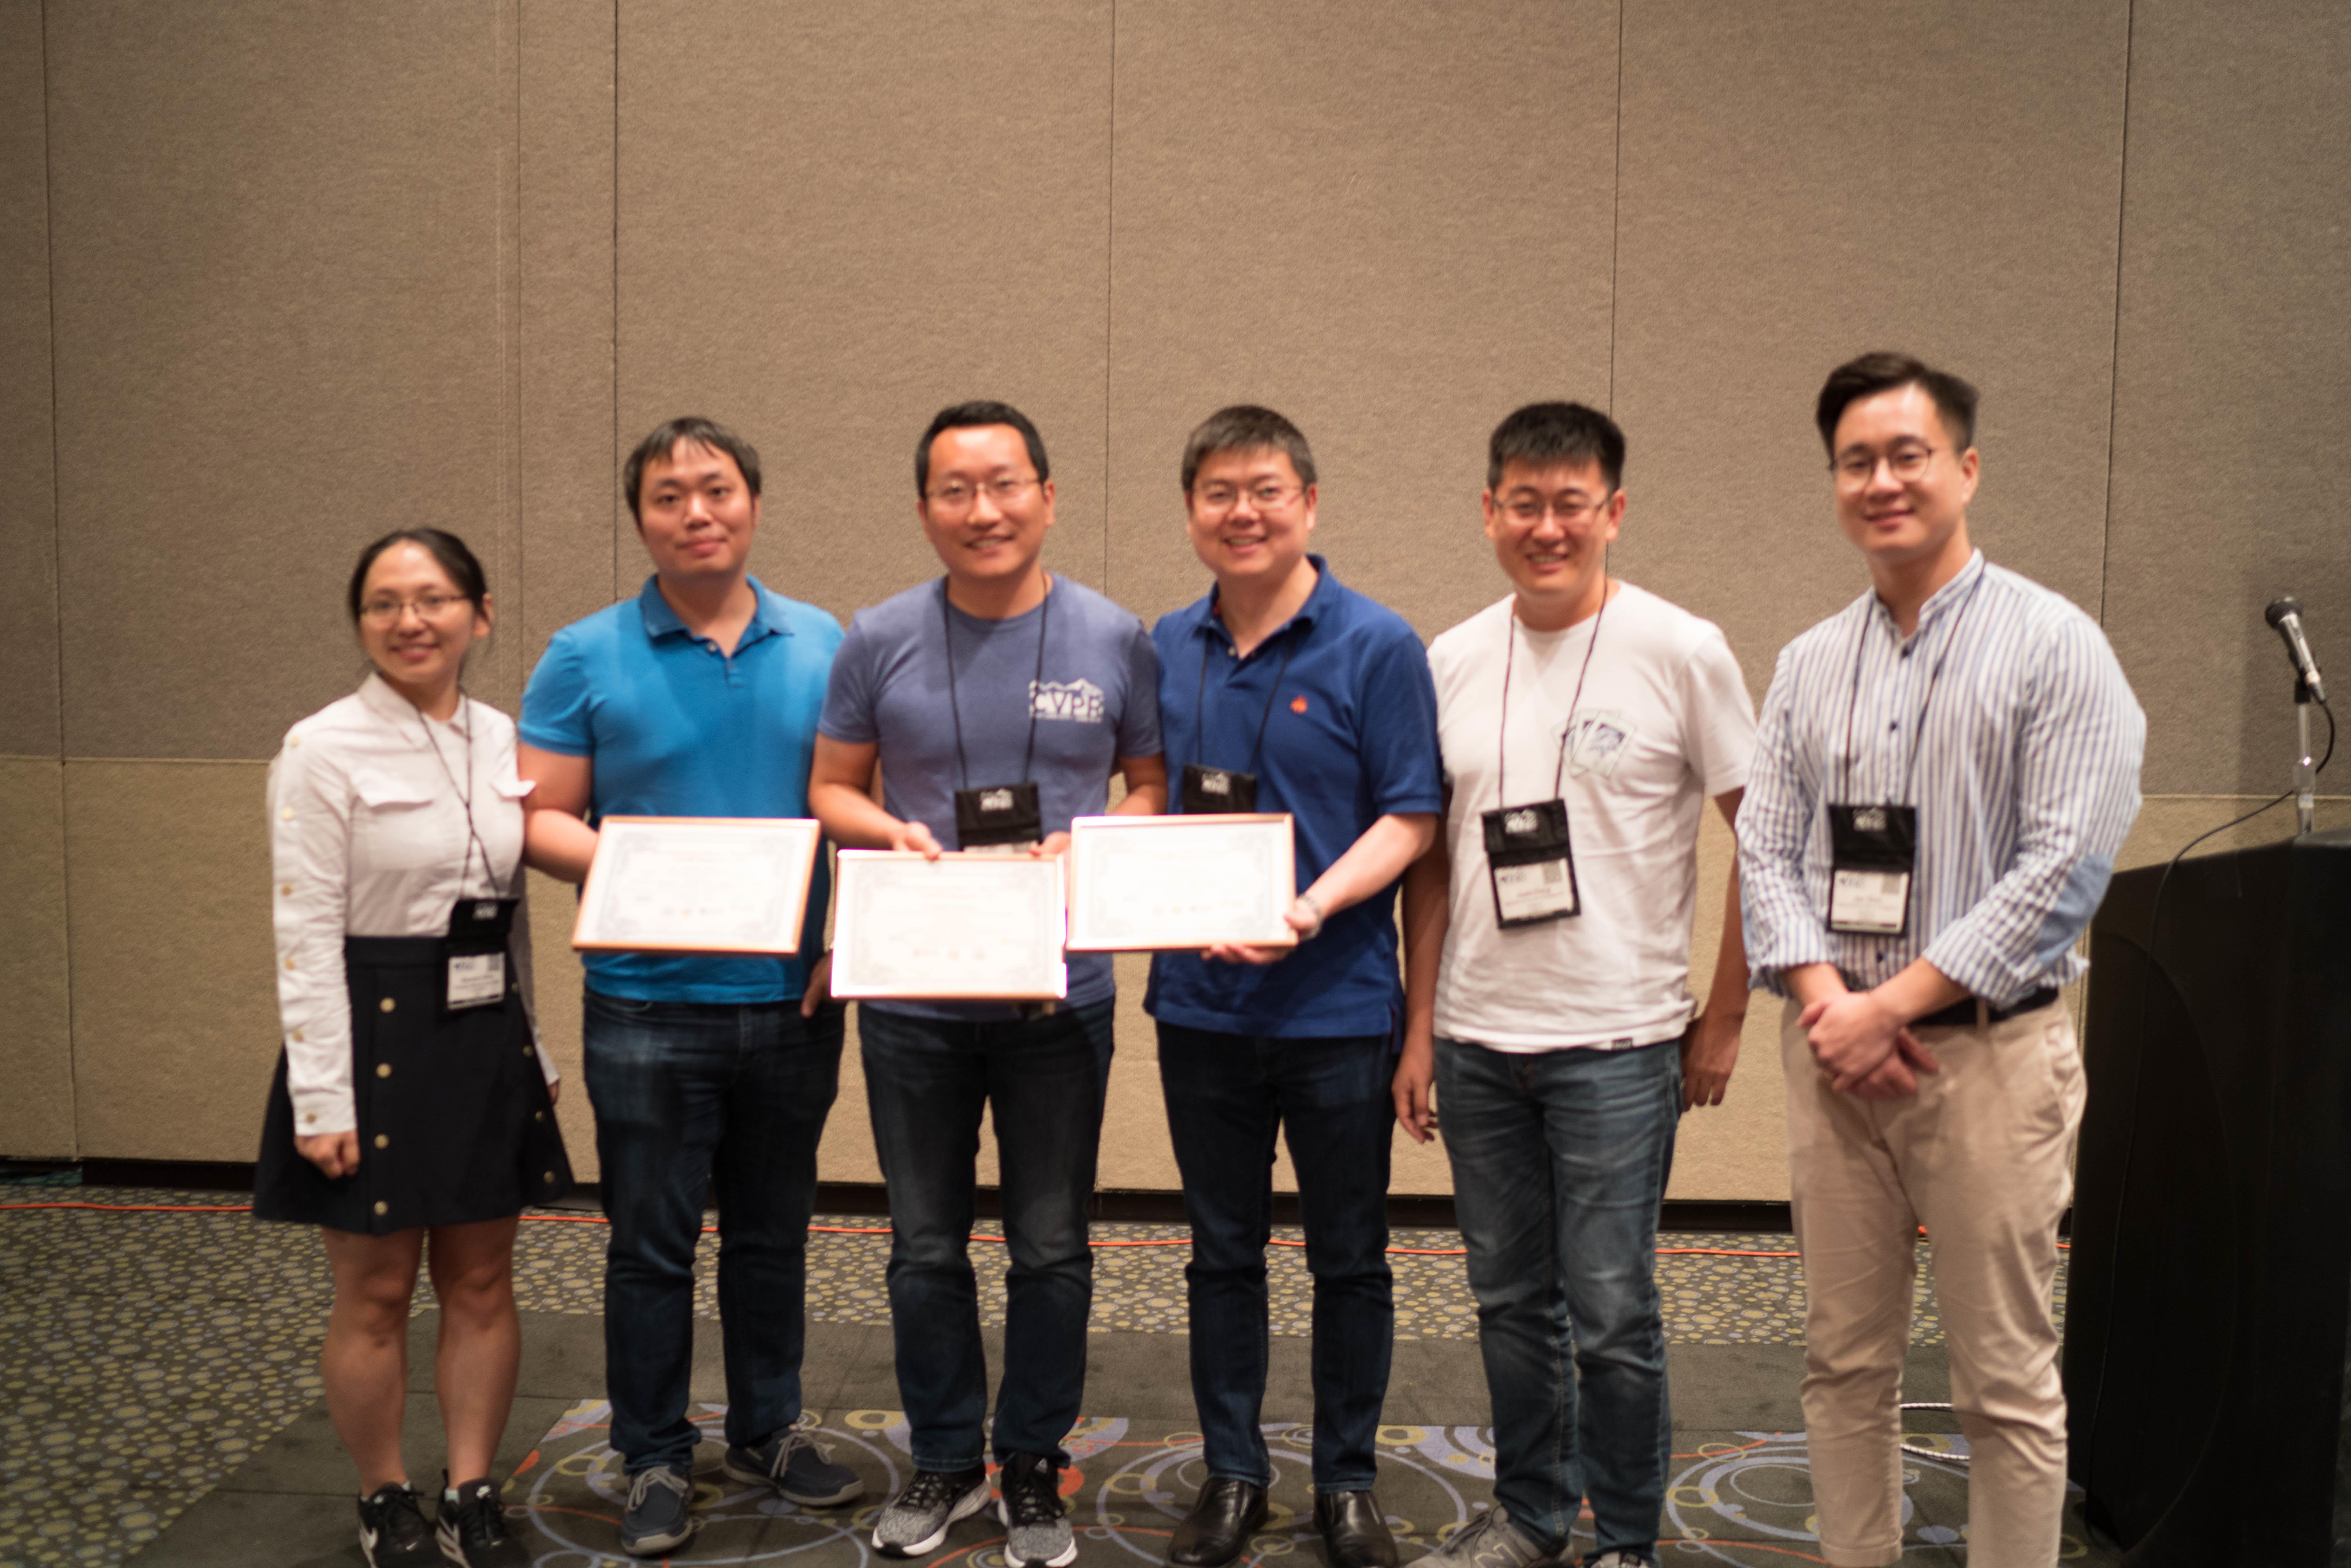 Three members of the team, Honghui Shi (second from left), Yunchao Wei (third from left) and Jinjun Xiong (third from right) accepted their certificates Monday in Salt Lake City.